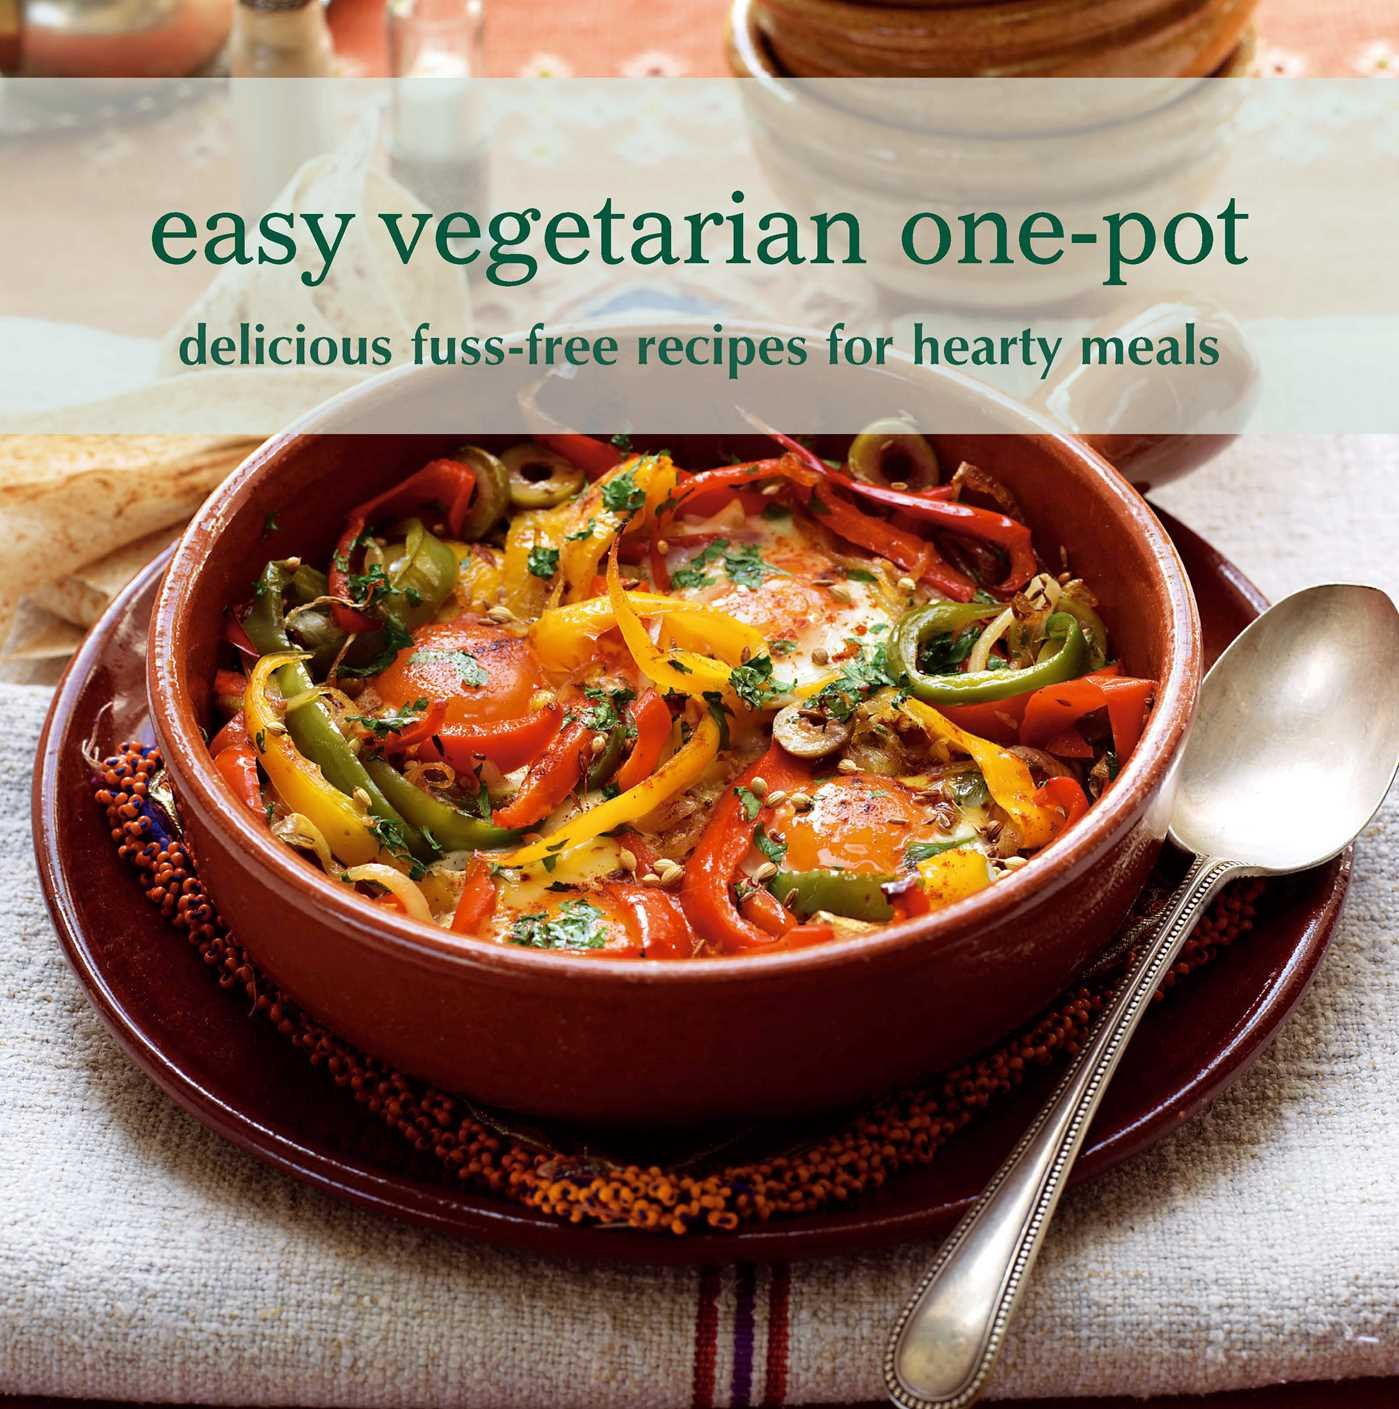 Easy vegetarian one pot delicious fuss free recipes for hearty easy vegetarian one pot delicious fuss free recipes for hearty meals to be announced 9781849751605 amazon books forumfinder Choice Image